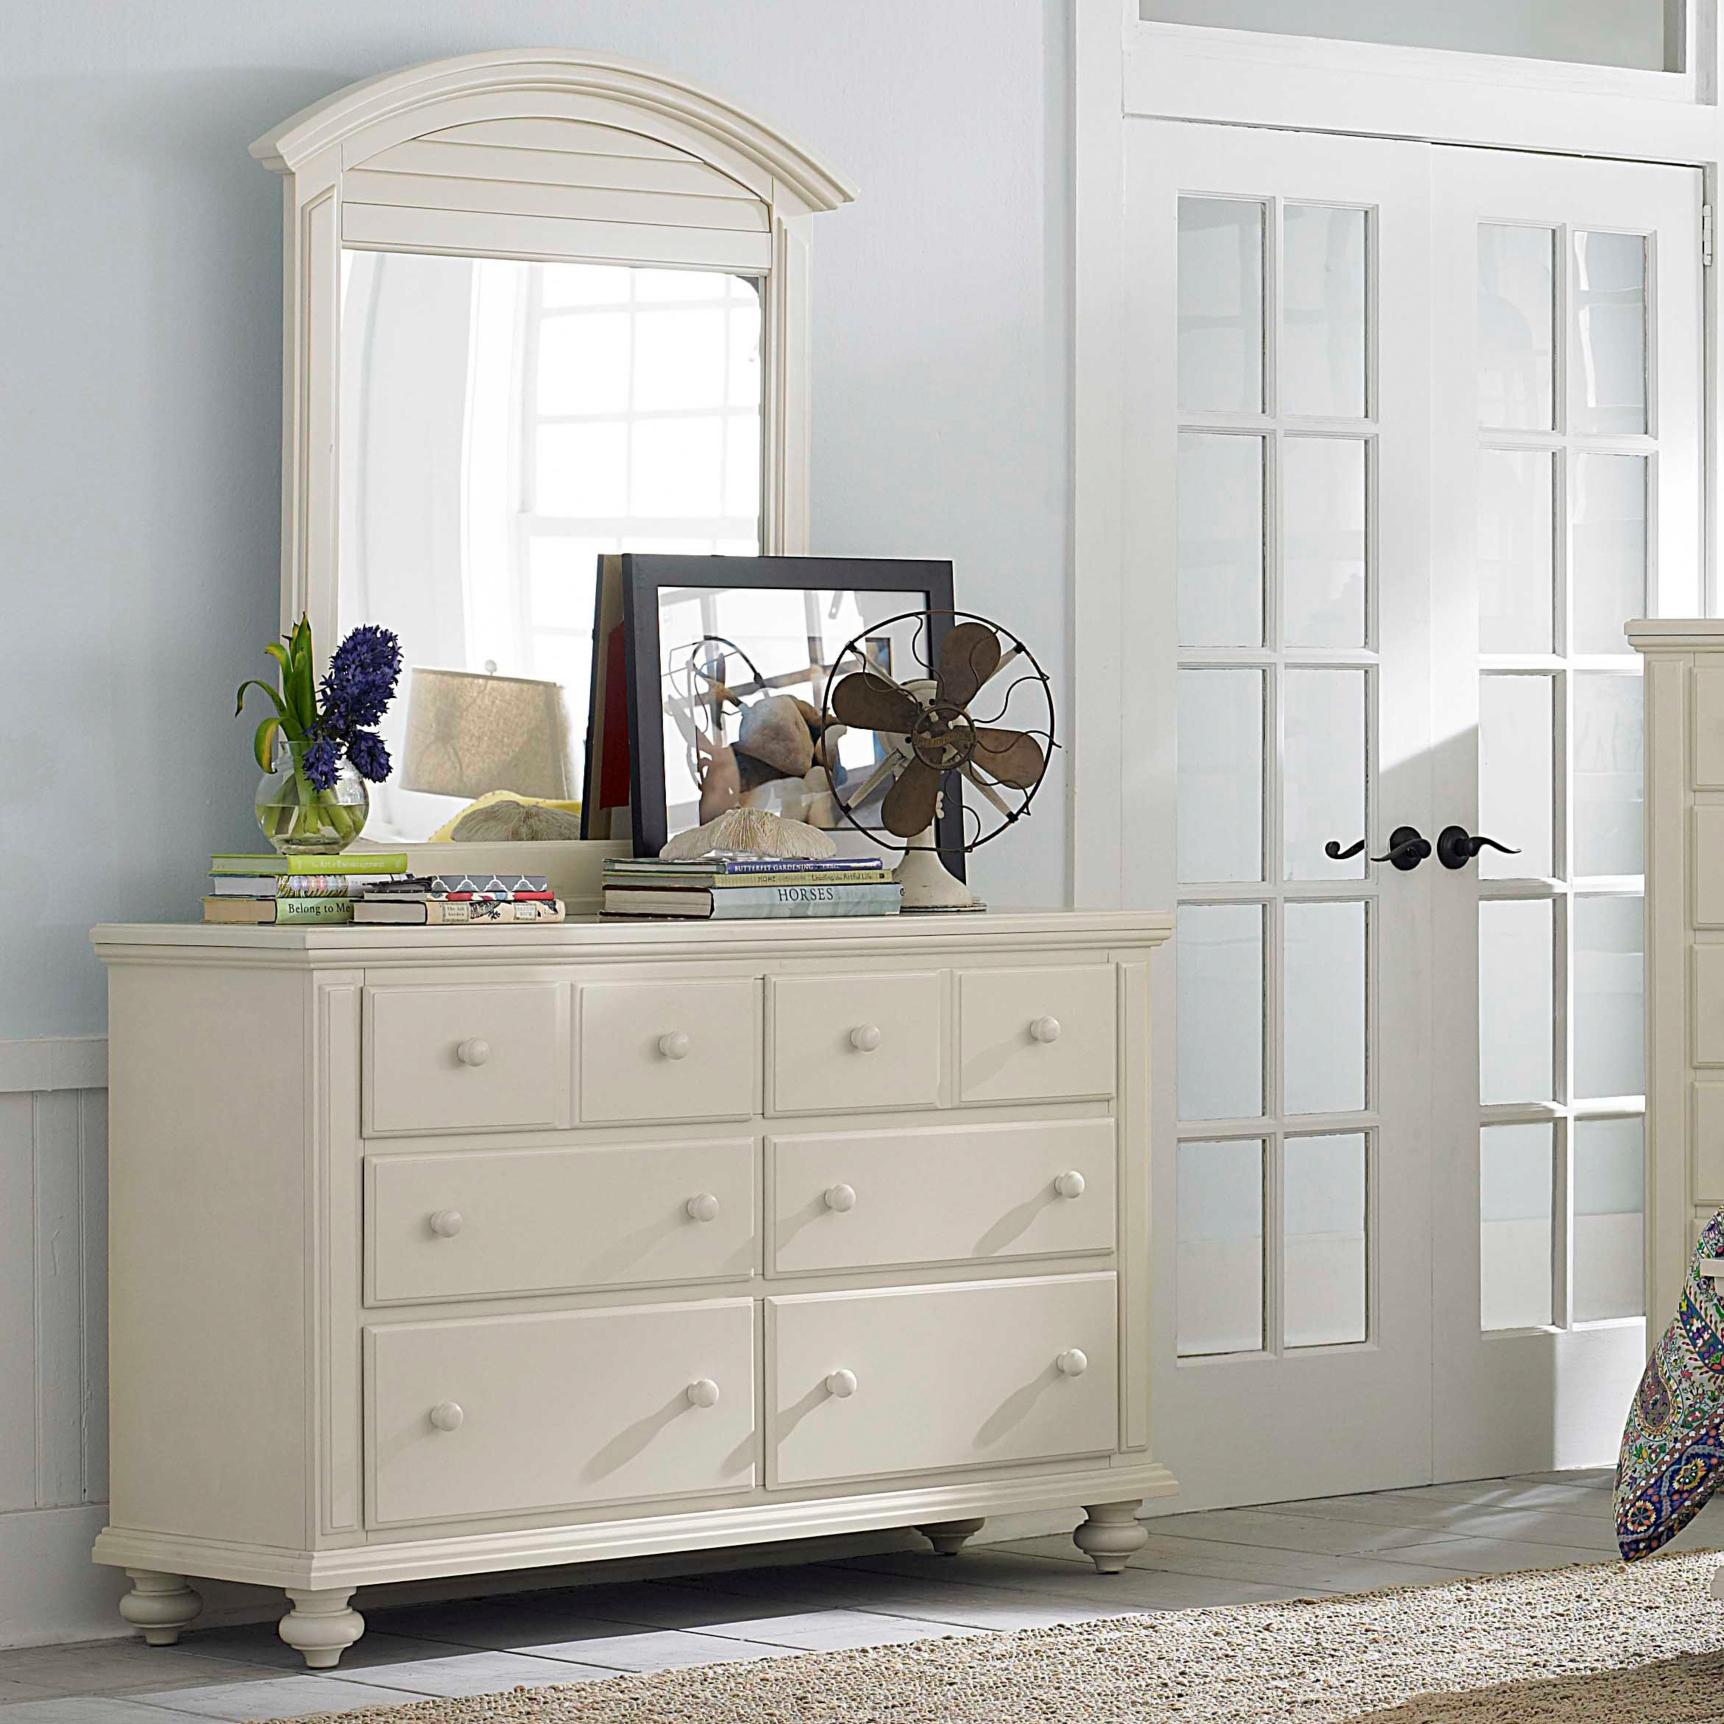 Broyhill Furniture Seabrooke 6 Drawer Dresser And Louver Arched Mirror Baer 39 S Furniture